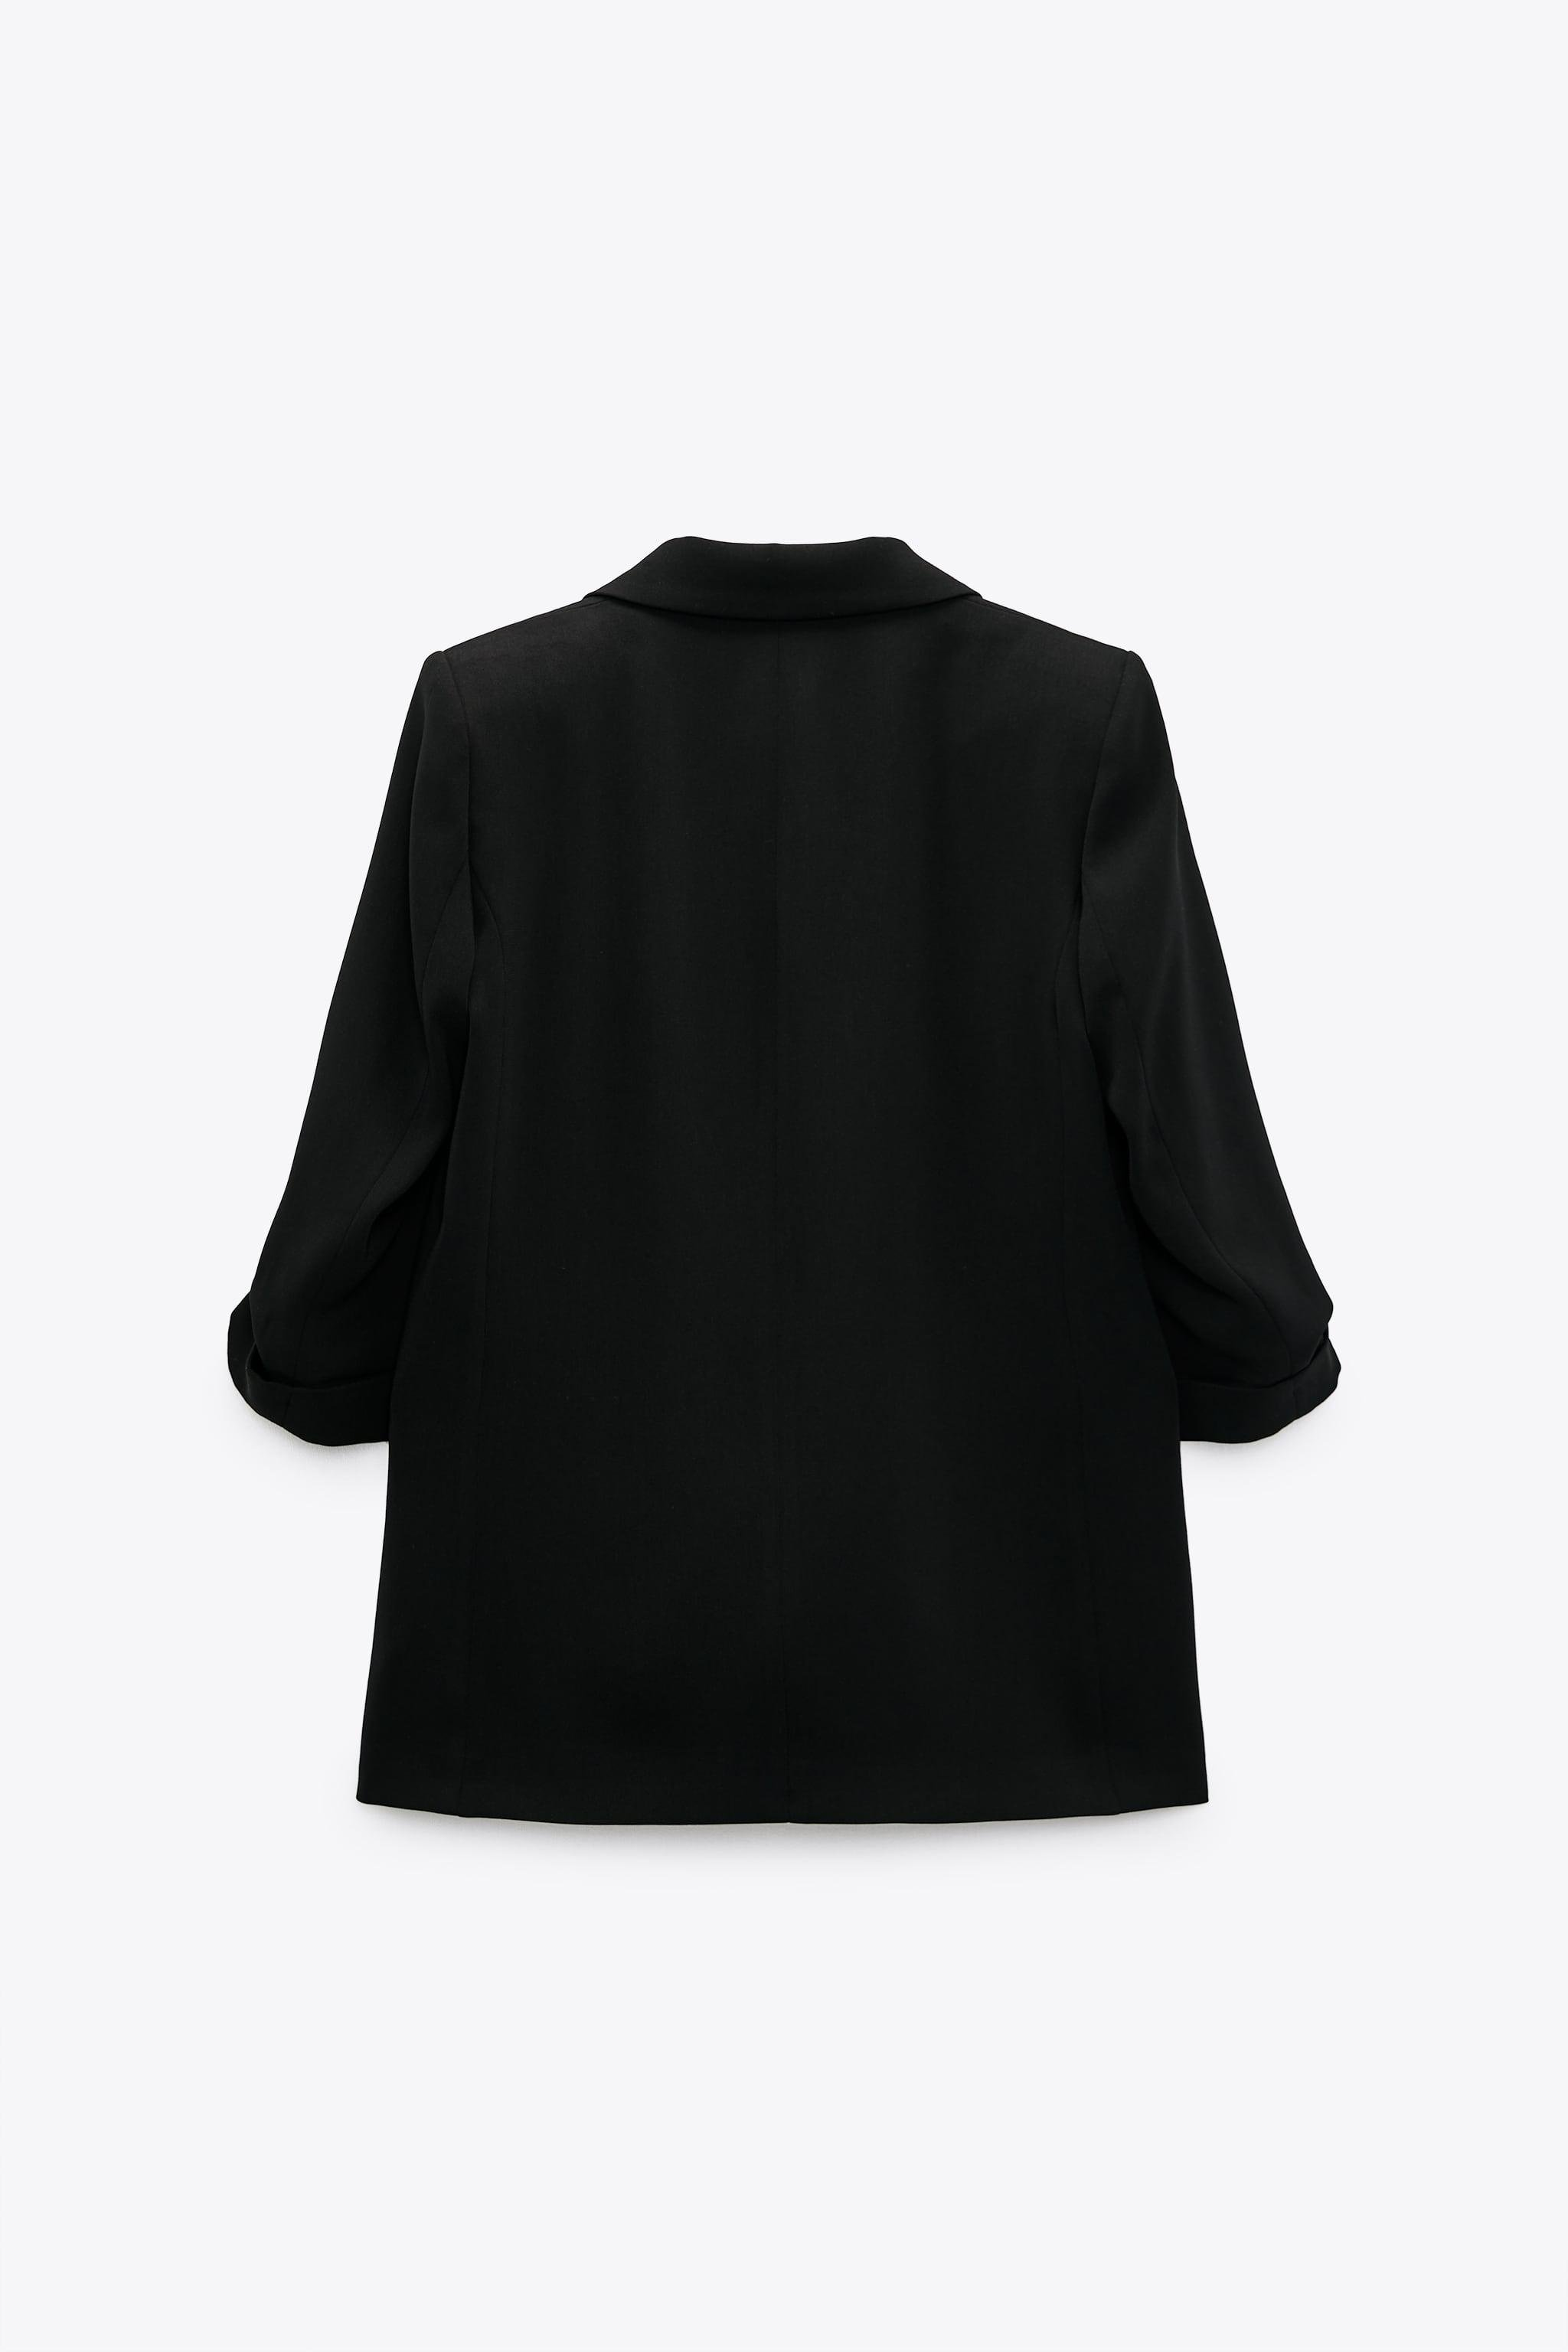 BLAZER WITH ROLLED-UP SLEEVES 2